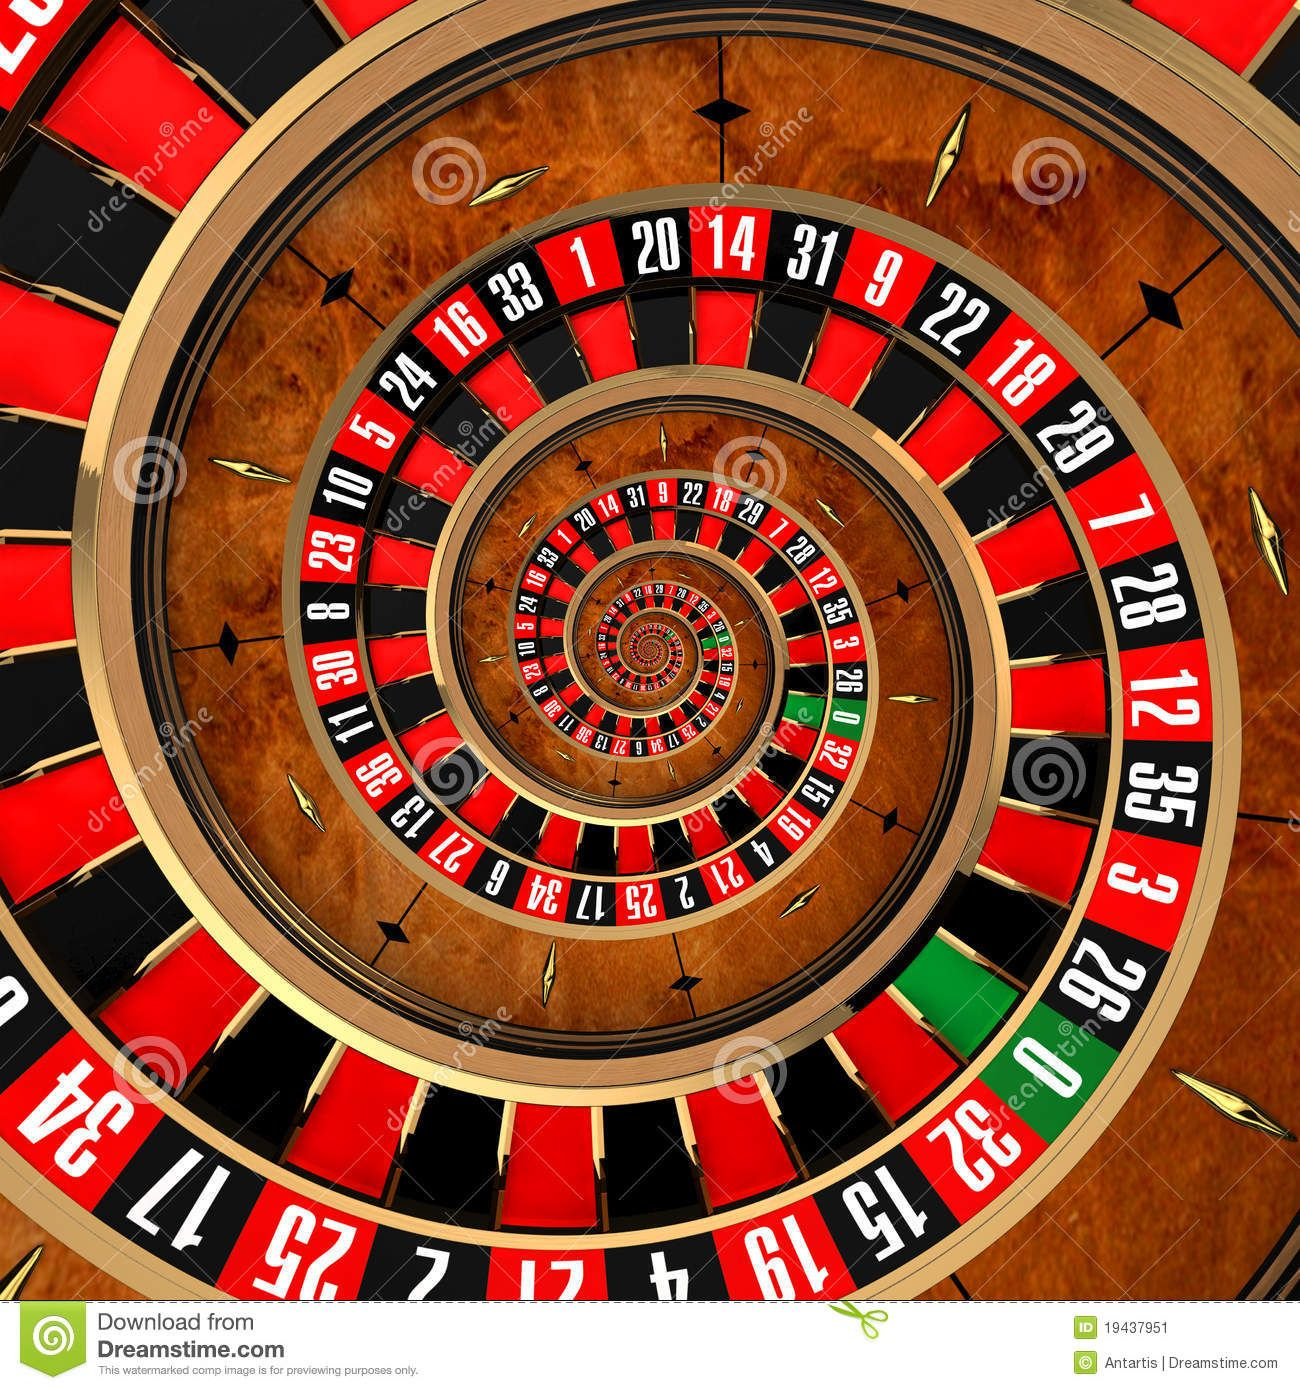 Point und figure roulette physics of roulette wheel